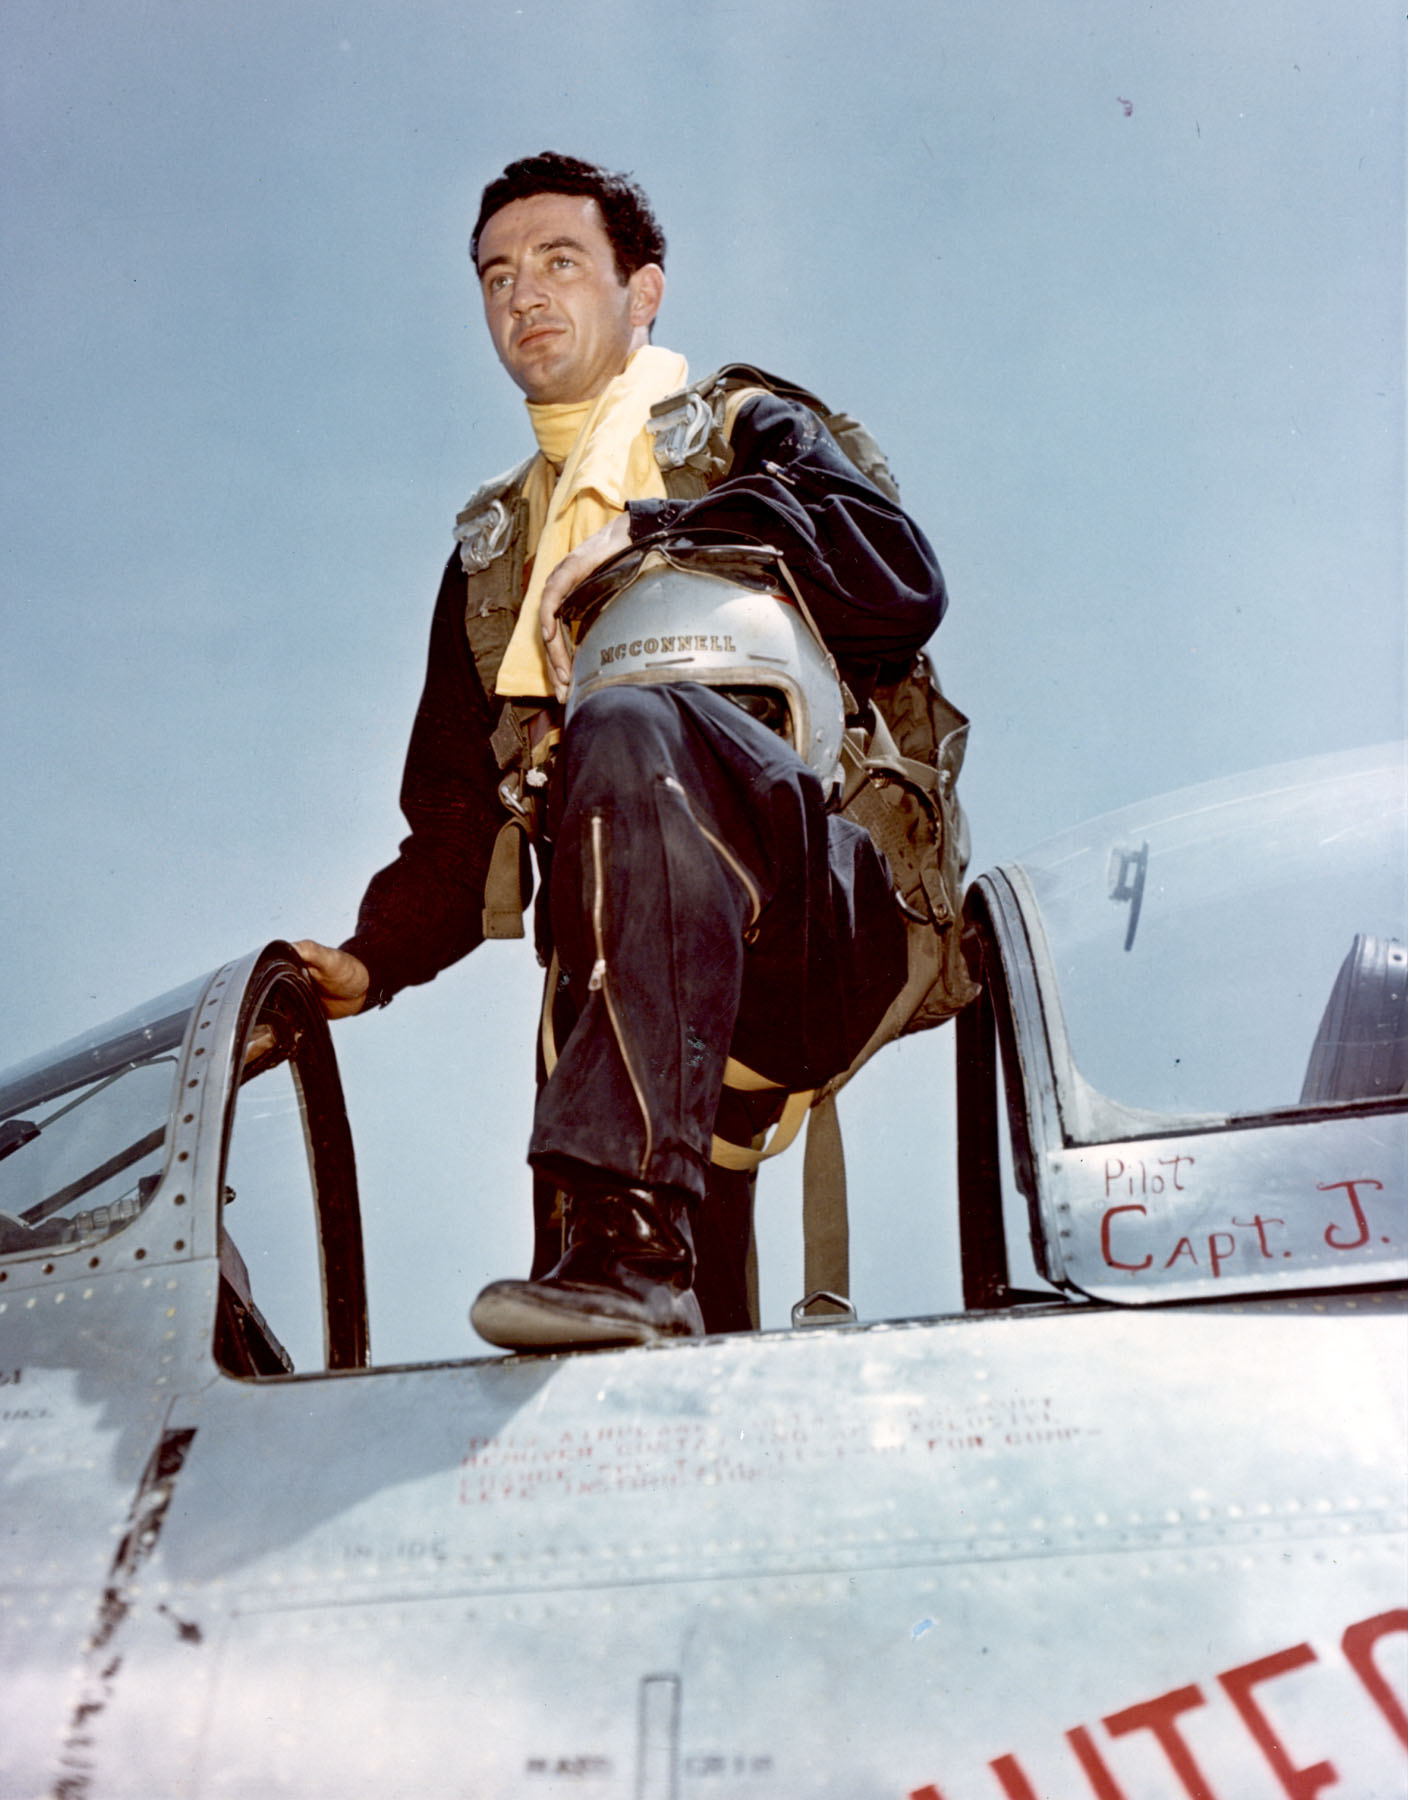 "#K6887 - Capt. Joseph McConnell, Jr., Mohawk Road, Apple Valley, Calif., pilot of the 51st Fighter Interceptor Wing, who became the 27th jet ace of the Korean Conflict on the 9th of March, 1953, is shown leaving the cockpit of his sleek F-86 ""Sabre"" jet. (U.S. Air Force Photo)"